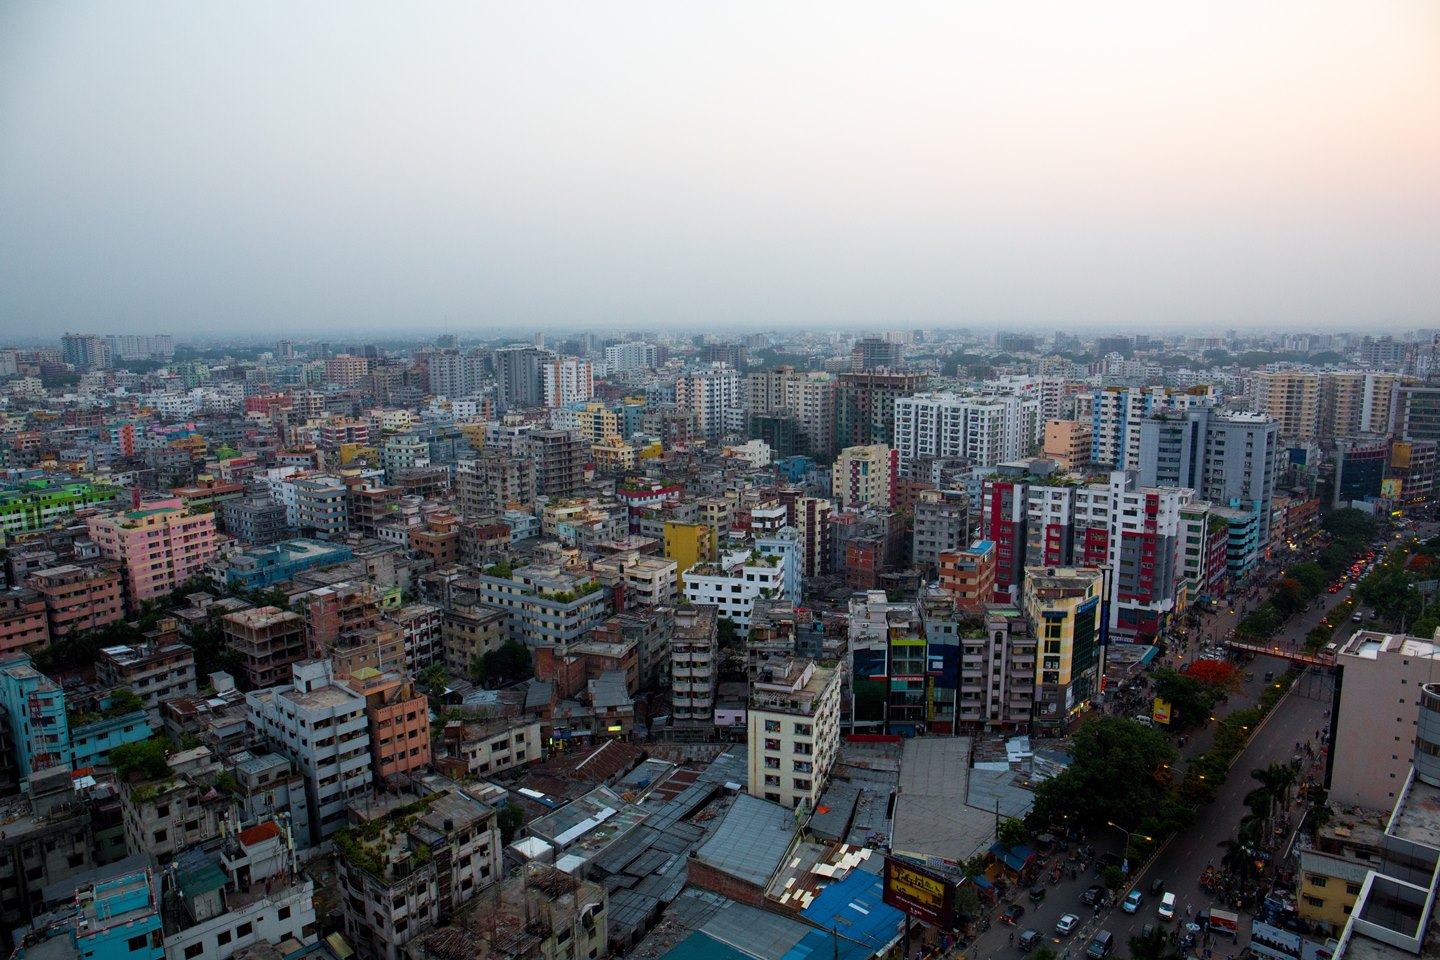 aerial view of Dhaka city